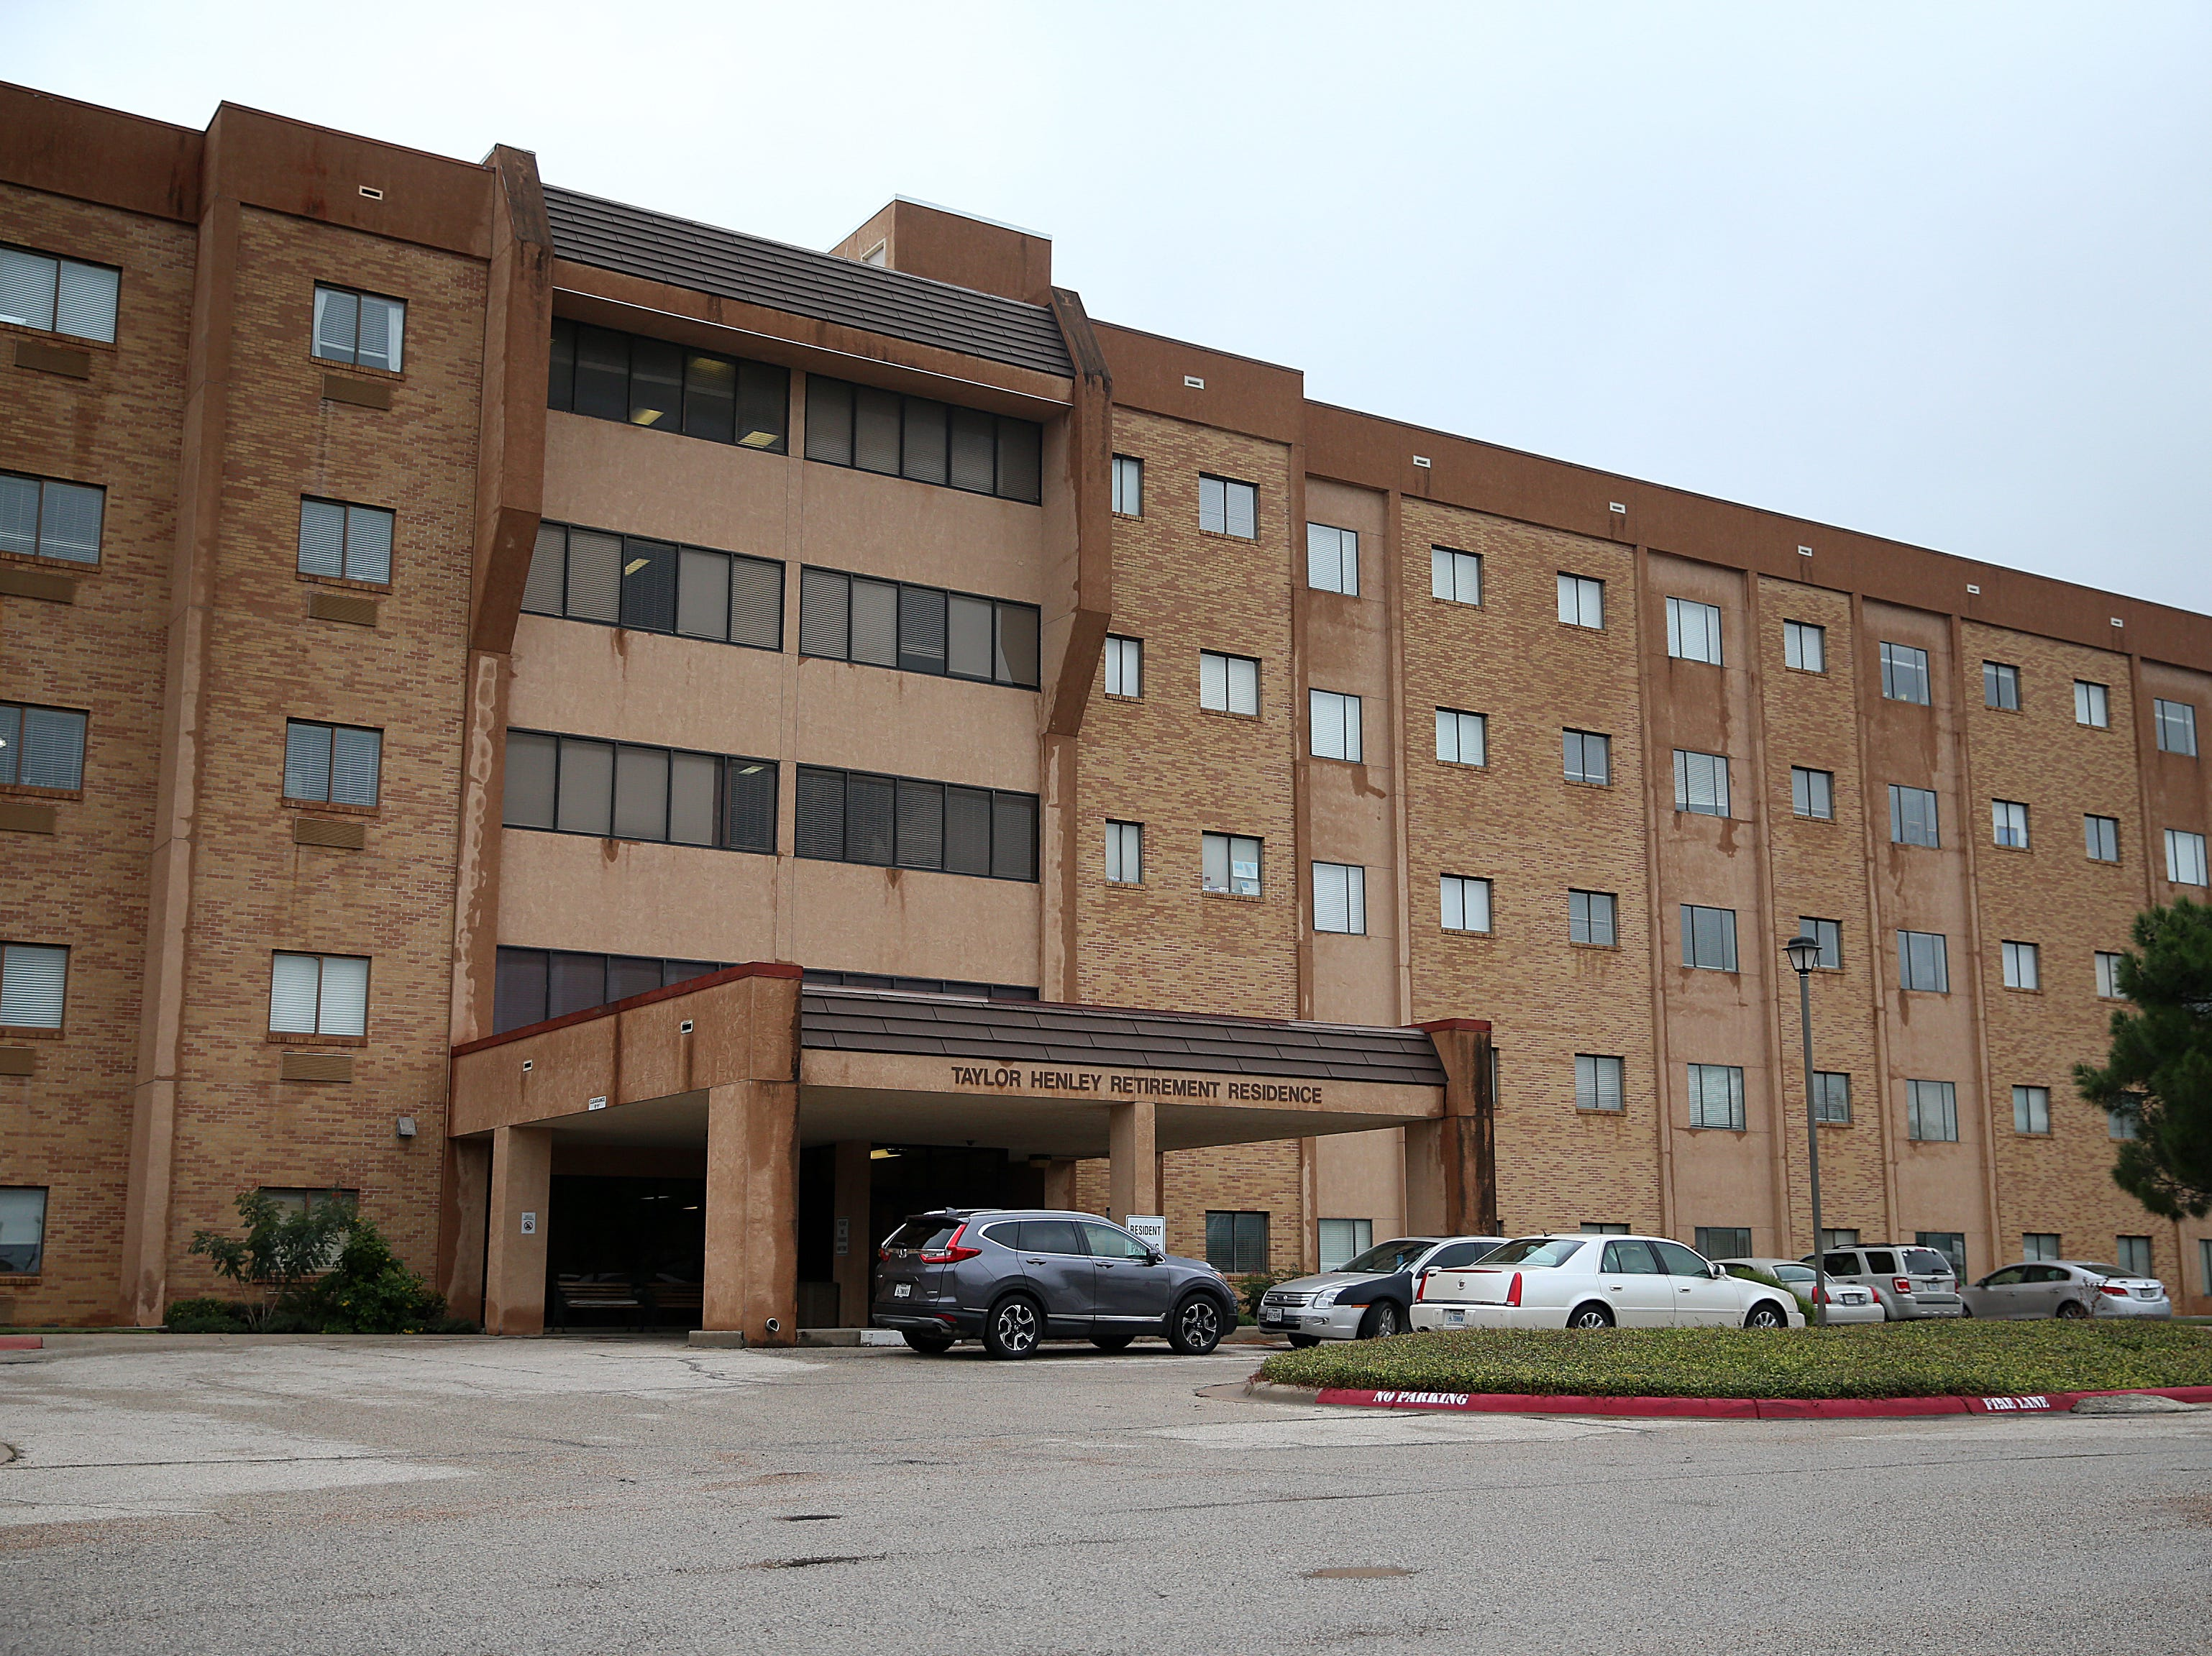 Huge changes — to the tune of $8.4M —coming to Baptist Retirement Community in San Angelo